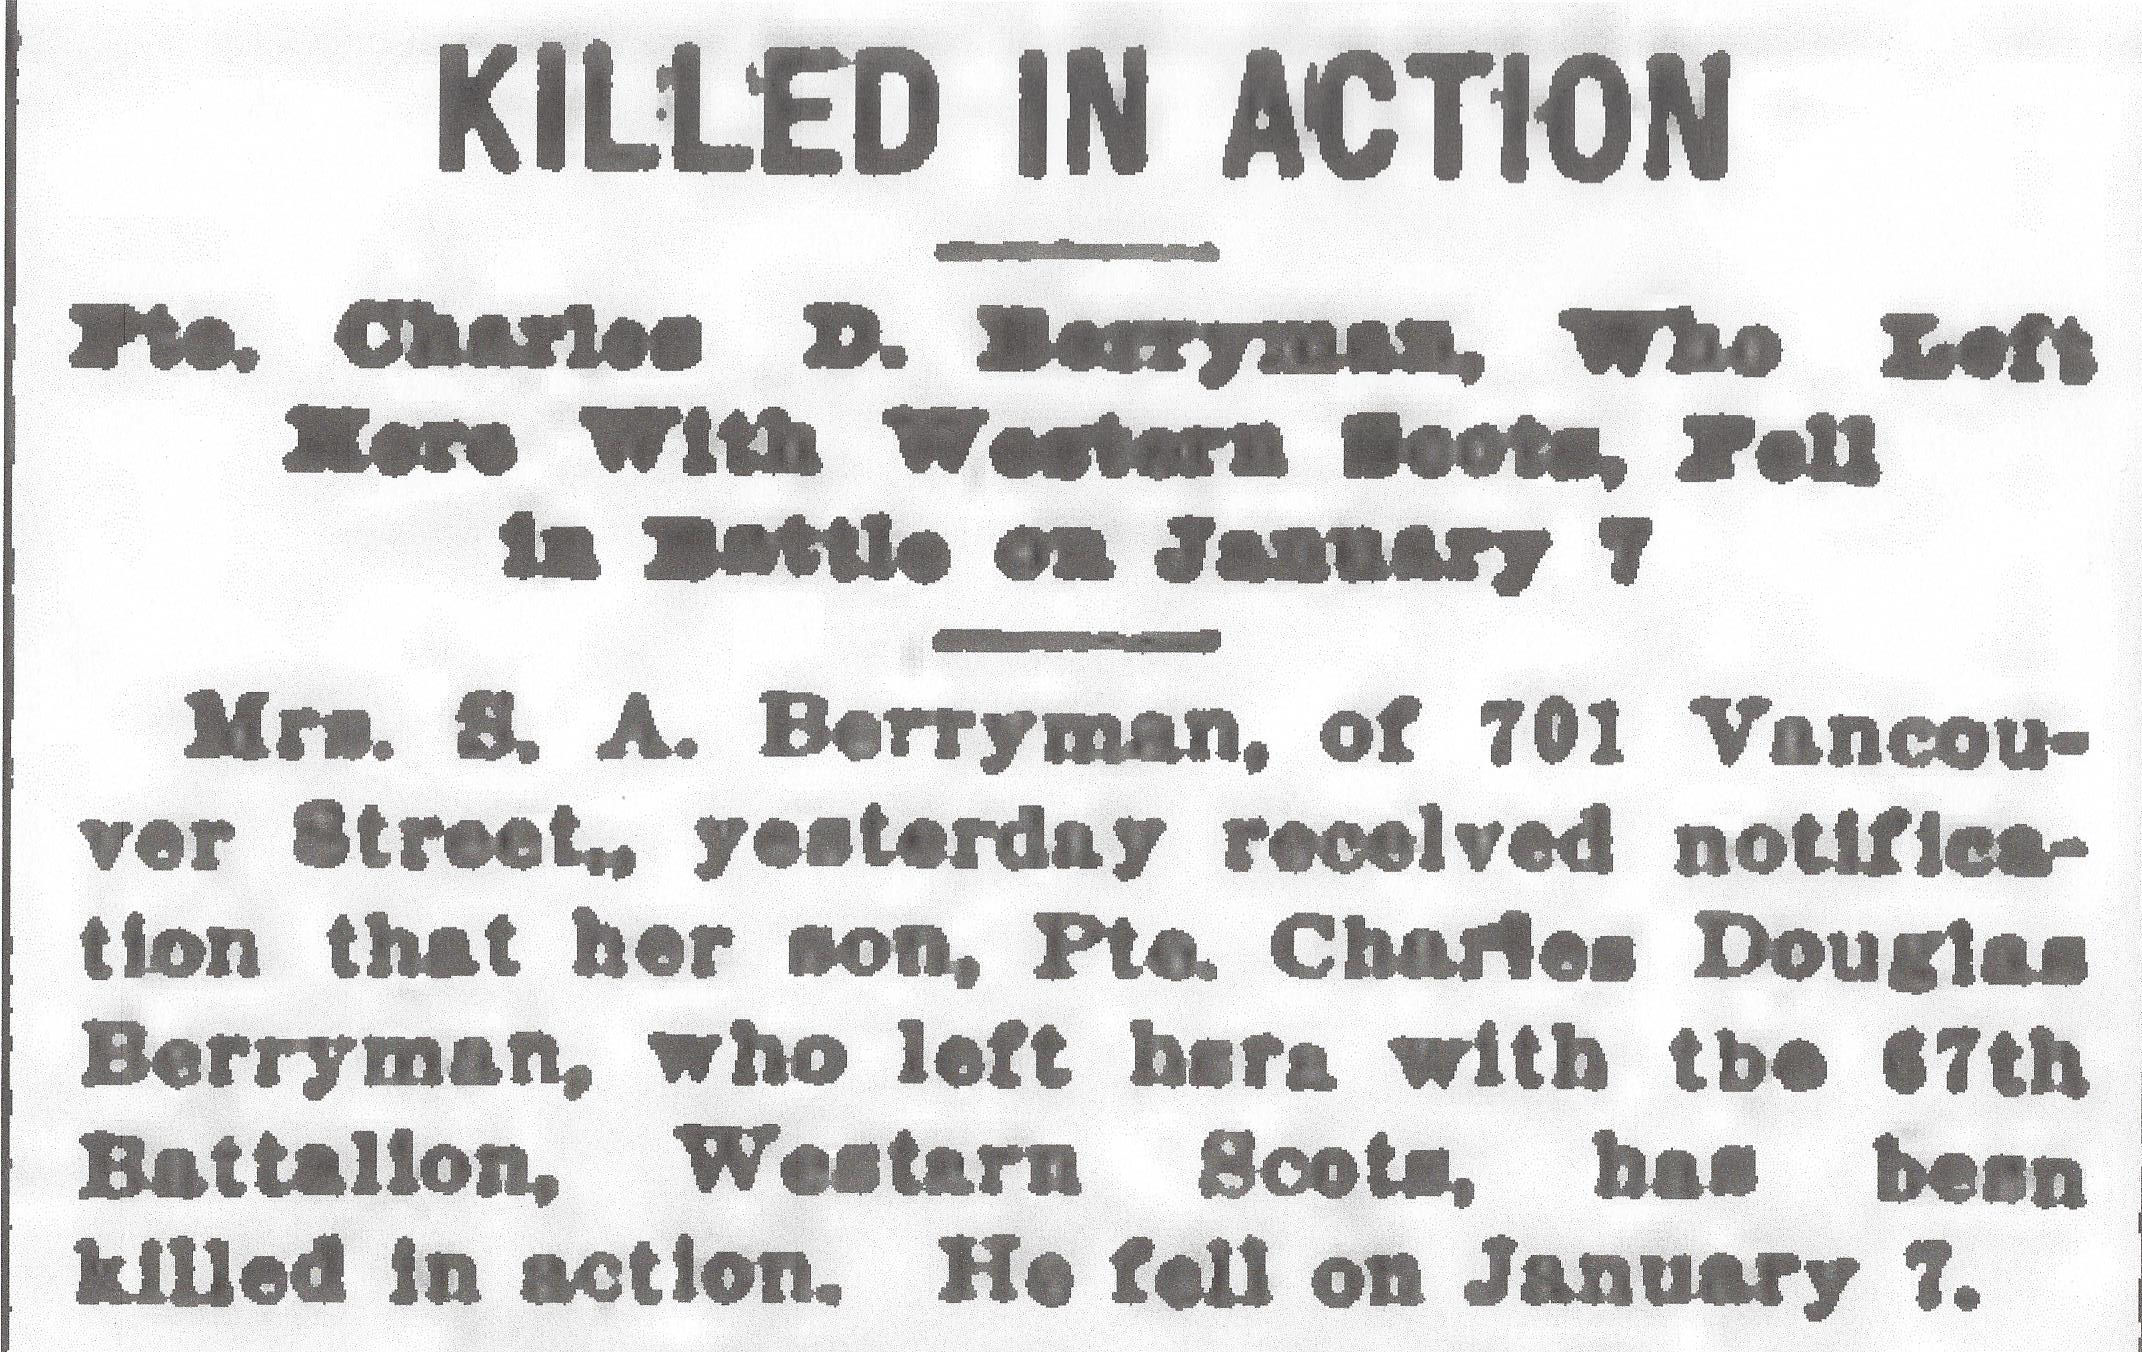 Newspaper clipping– From the Daily Colonist of January 20, 1917. Image taken from web address of http://archive.org/stream/dailycolonist59y35uvic#page/n0/mode/1up